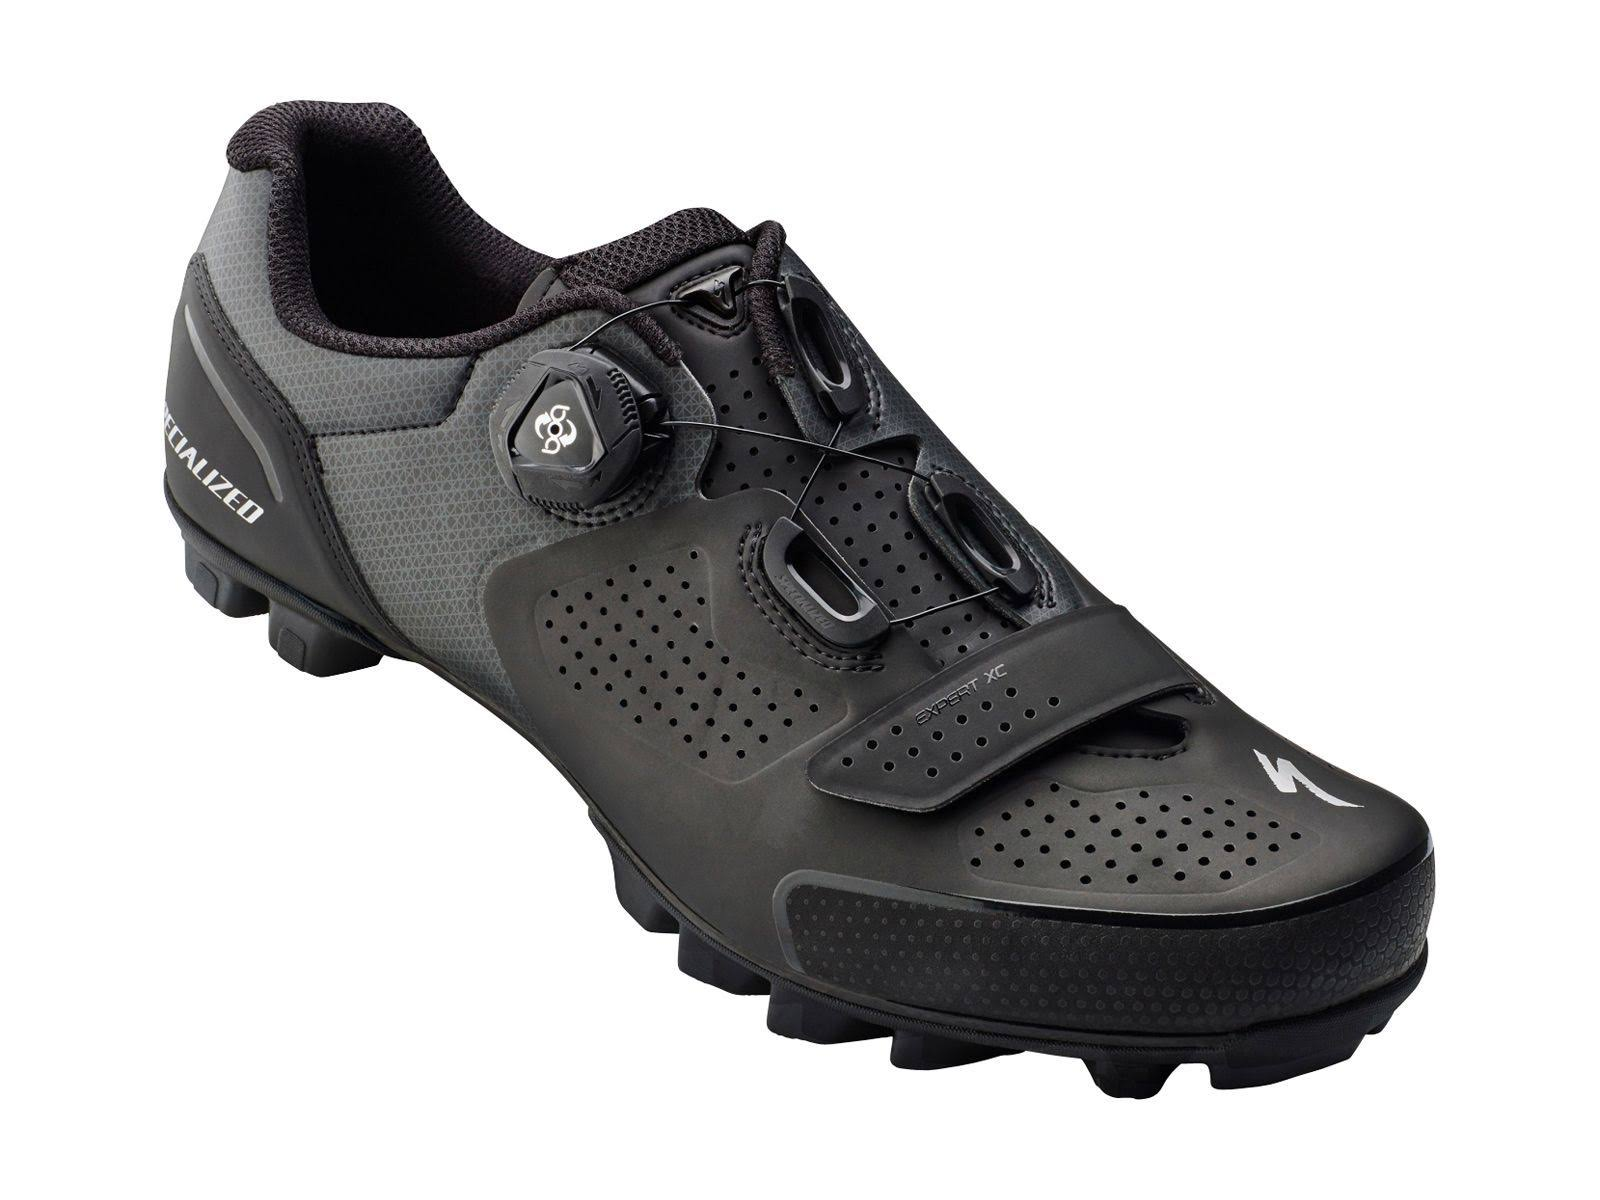 Specialized Expert XC Mountain Bike Shoes - Black, 44 EU